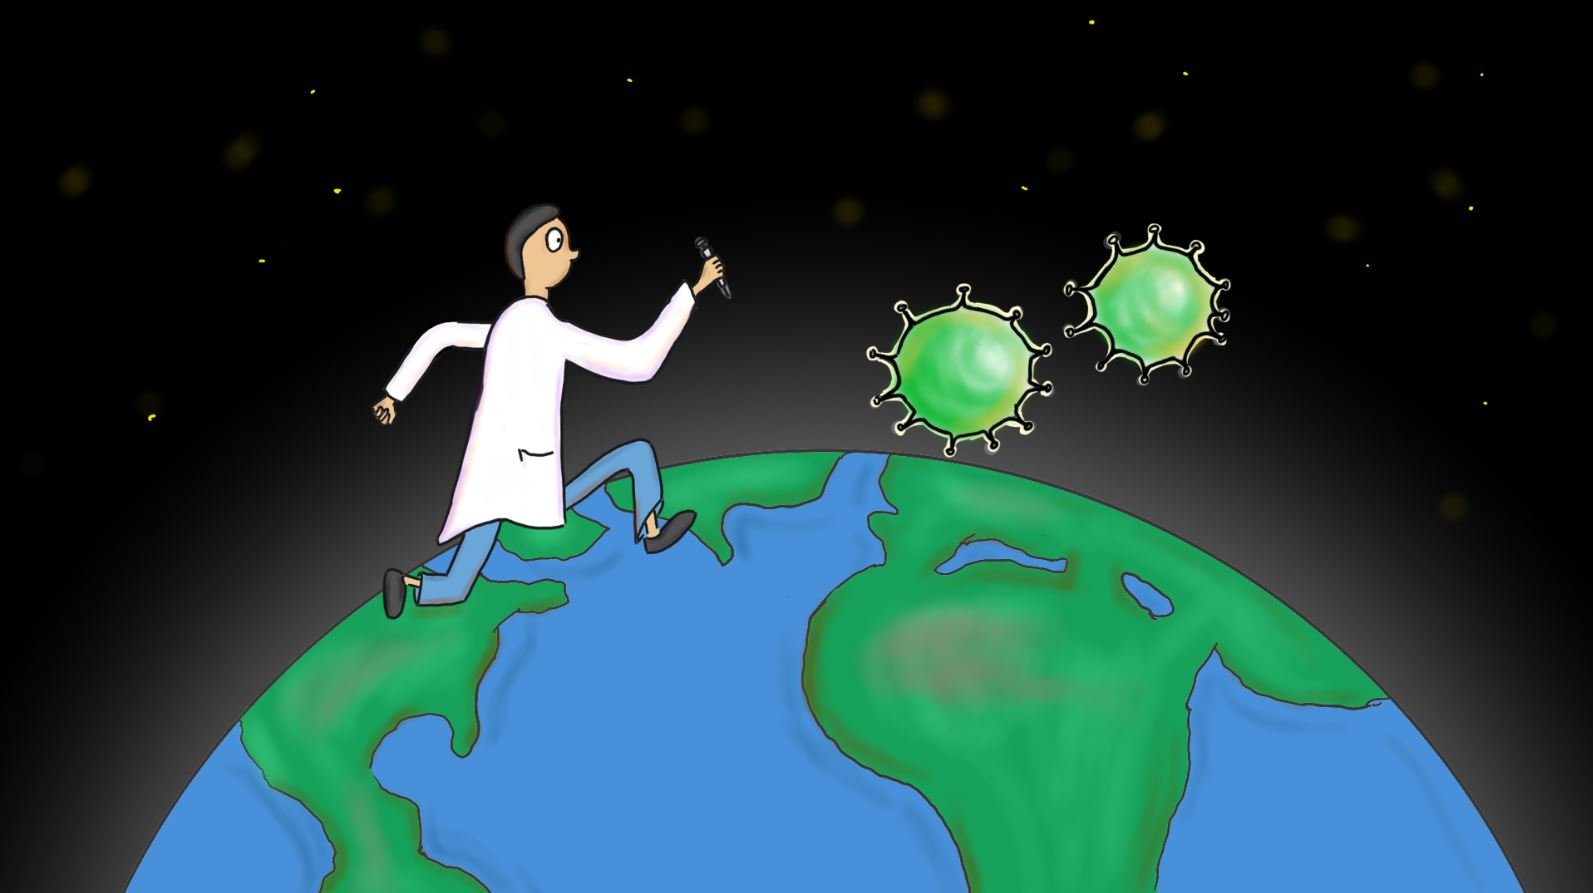 A scientist chases the flu virus around the globe